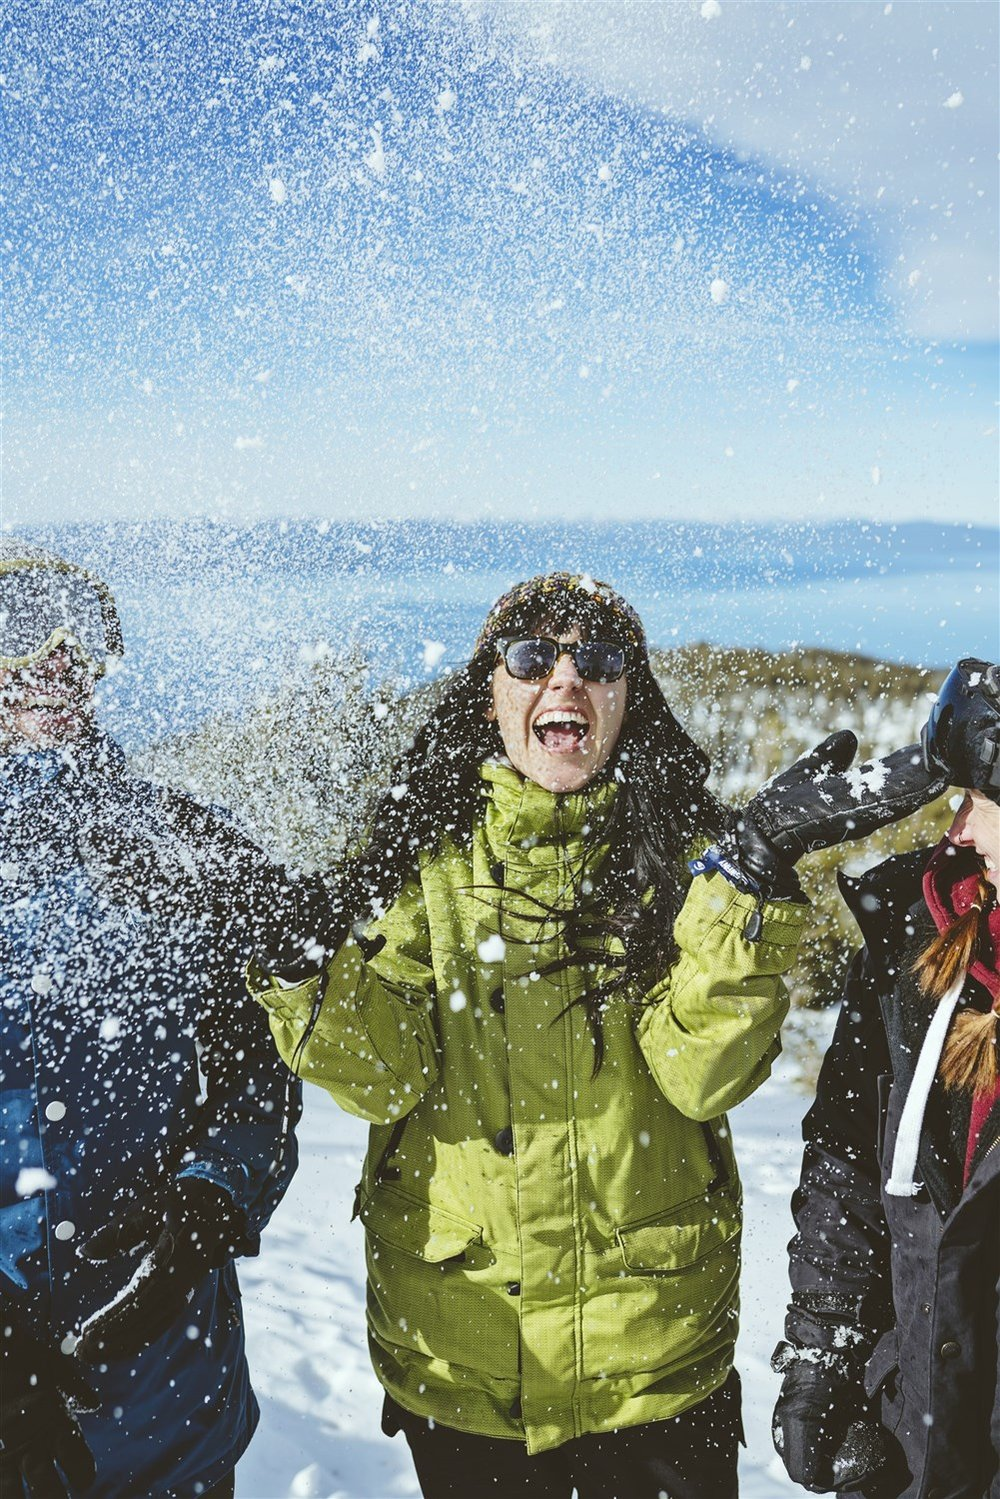 Heavenly  is Tahoe's largest and most visited ski and snowboard resort, and also is popular for sightseeing and snowplay. The mountain offers gorgeous views of Lake Tahoe's dazzling blue expanse.  Courtesy Vail Resorts